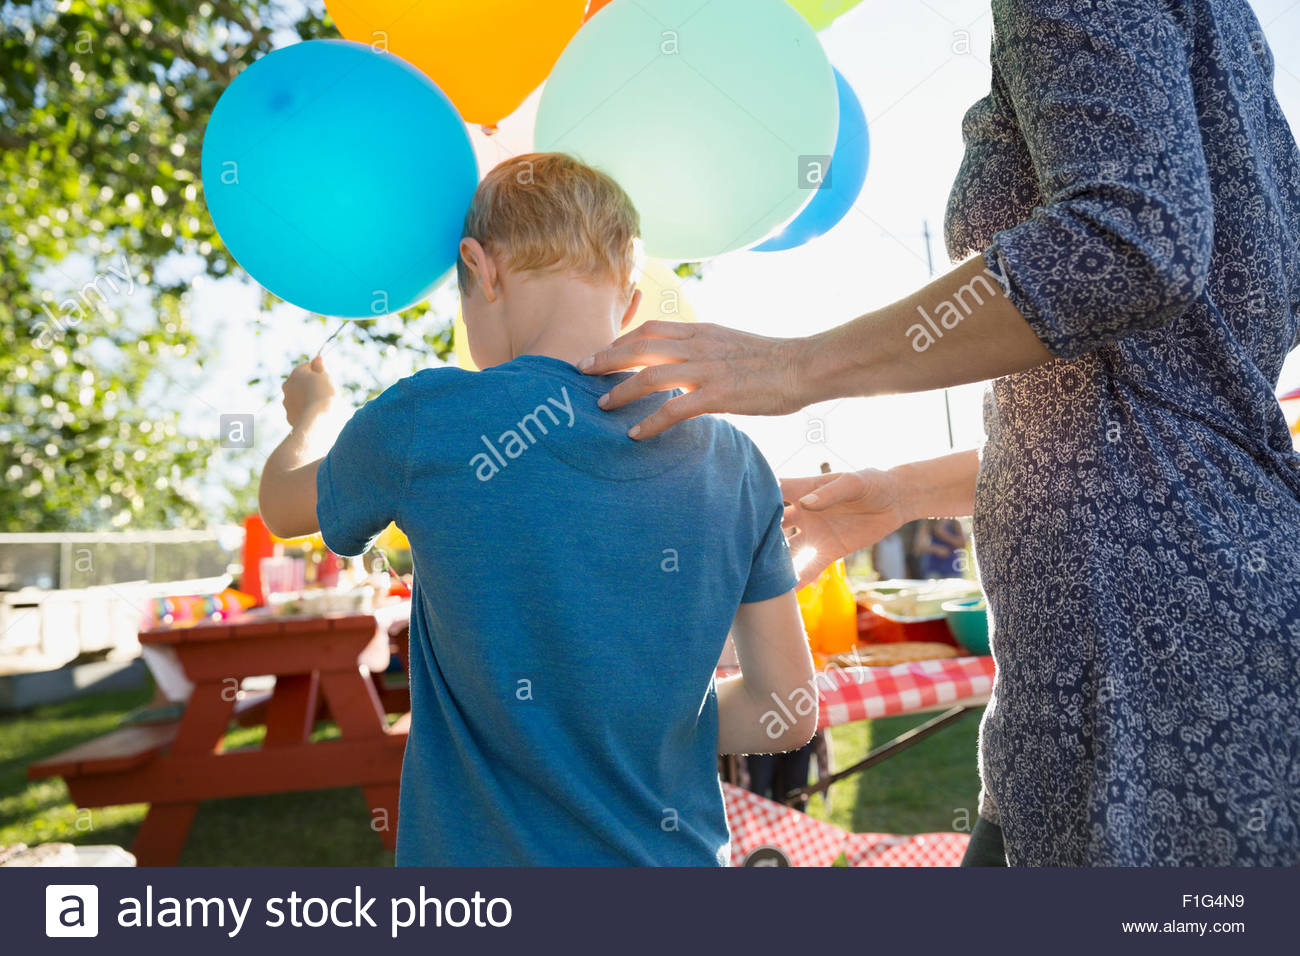 Mother and son with balloons in park - Stock Image